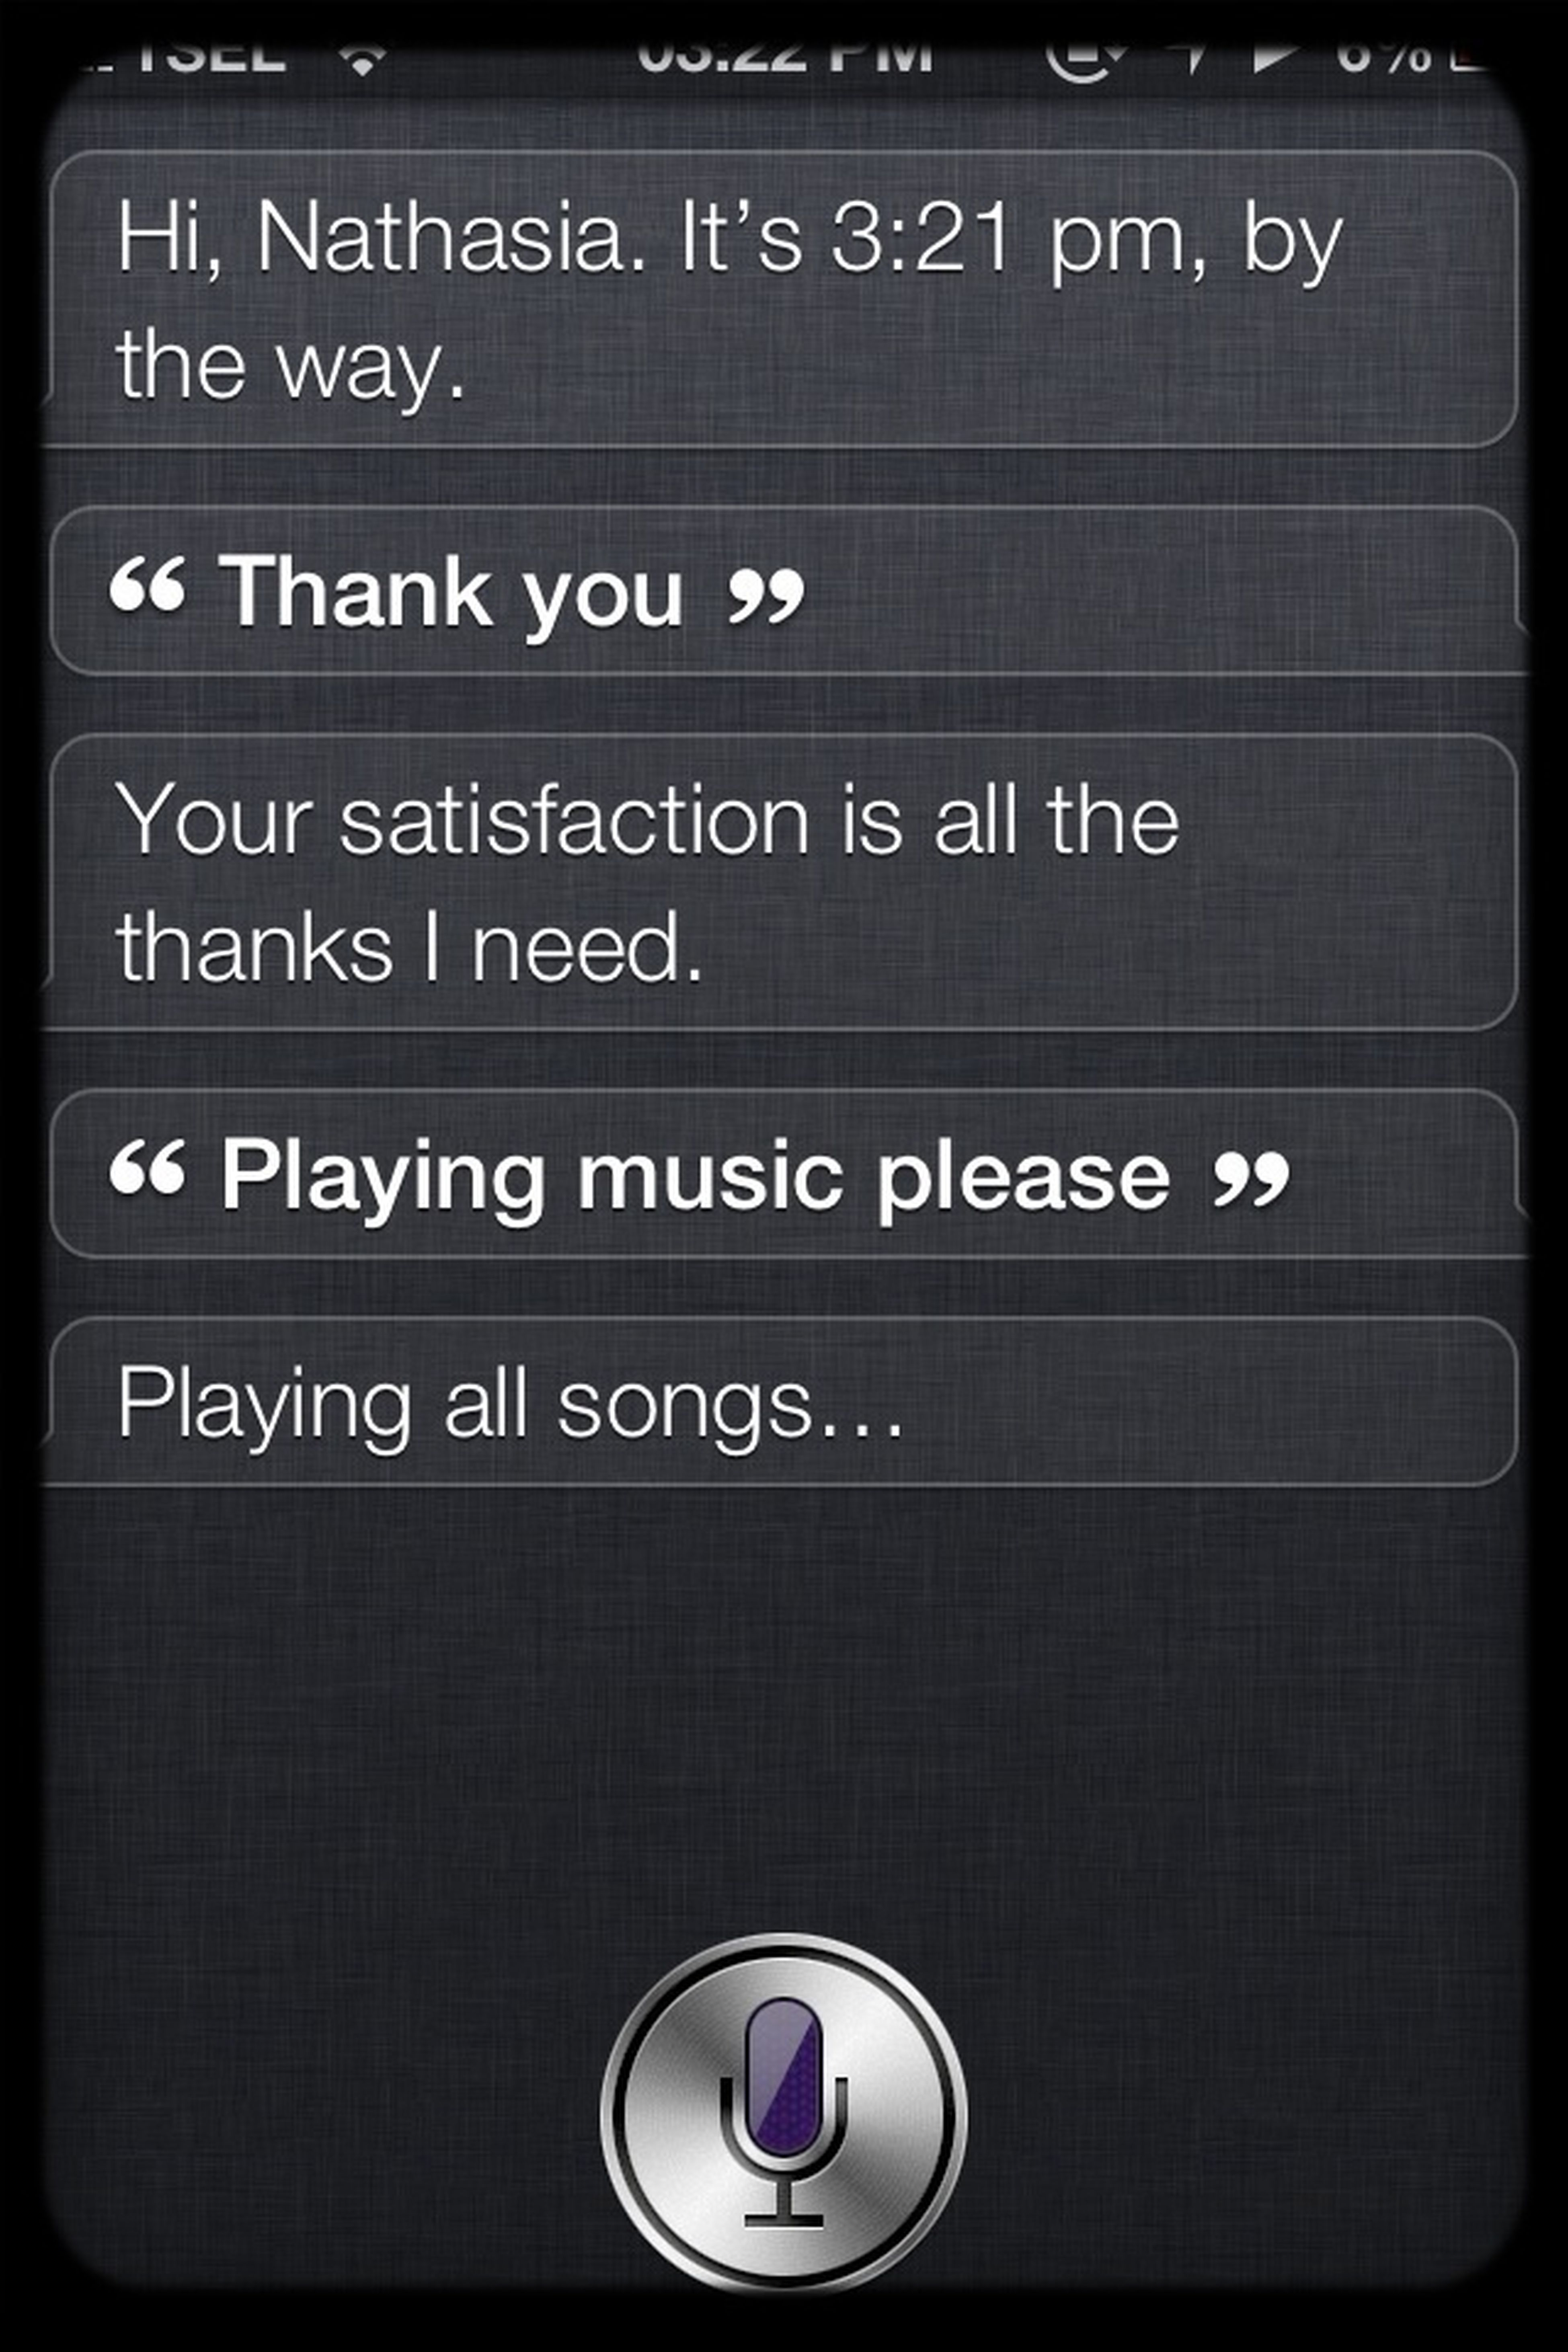 Early chitchat with my Siri